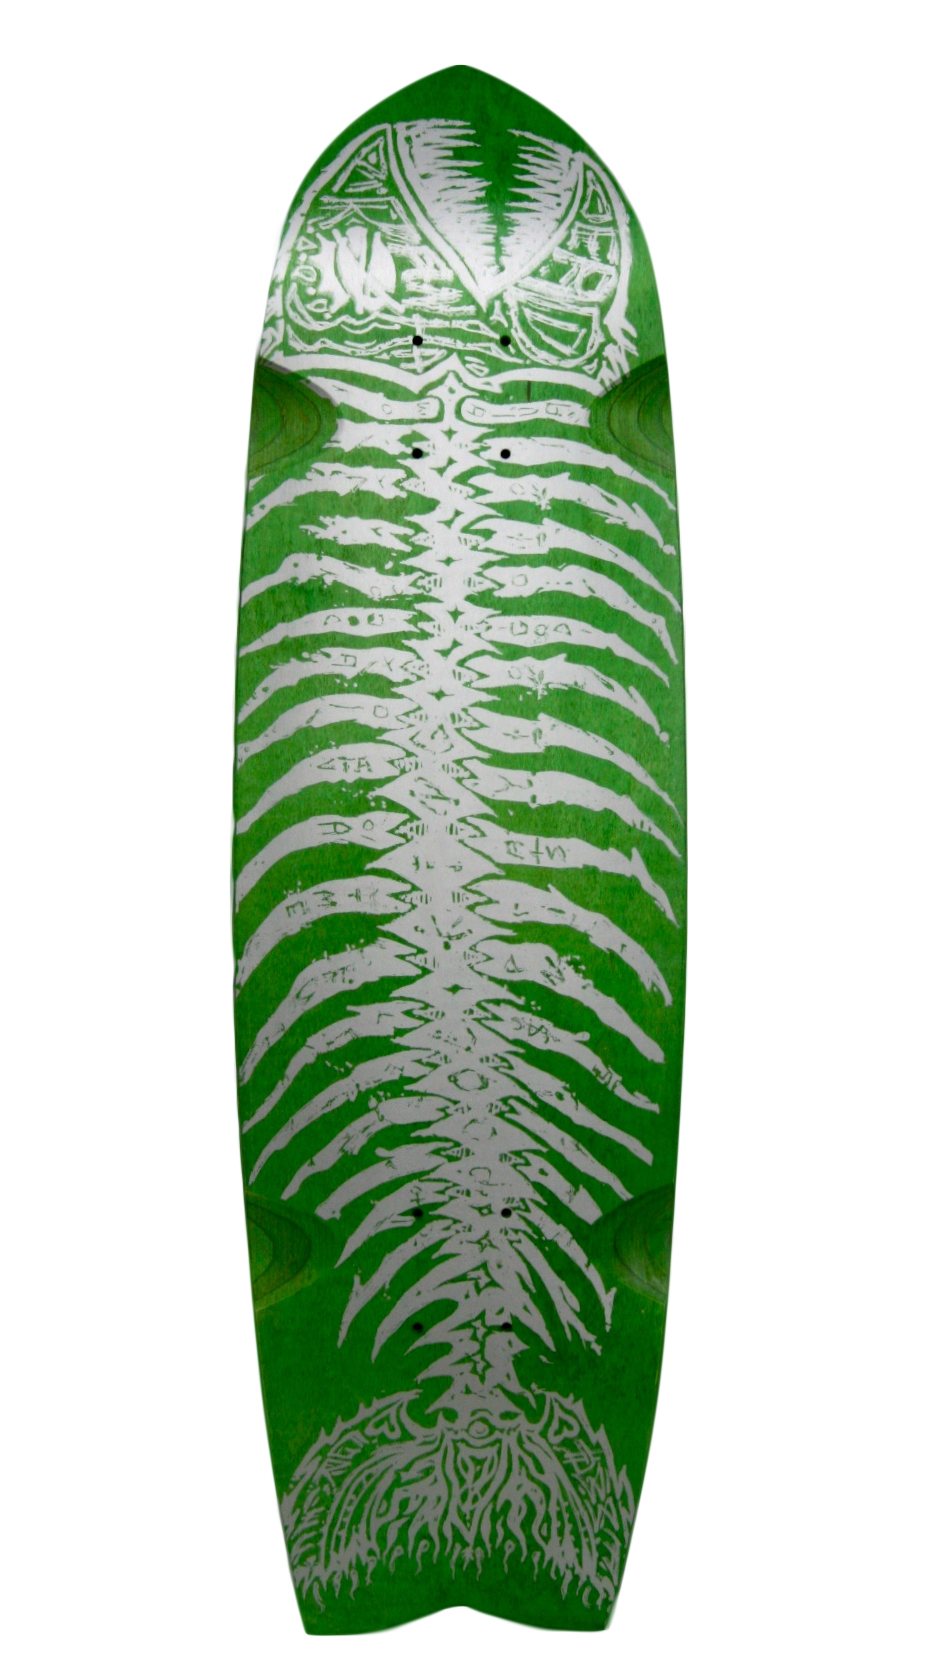 Alva green fish btm Skateboard Deck